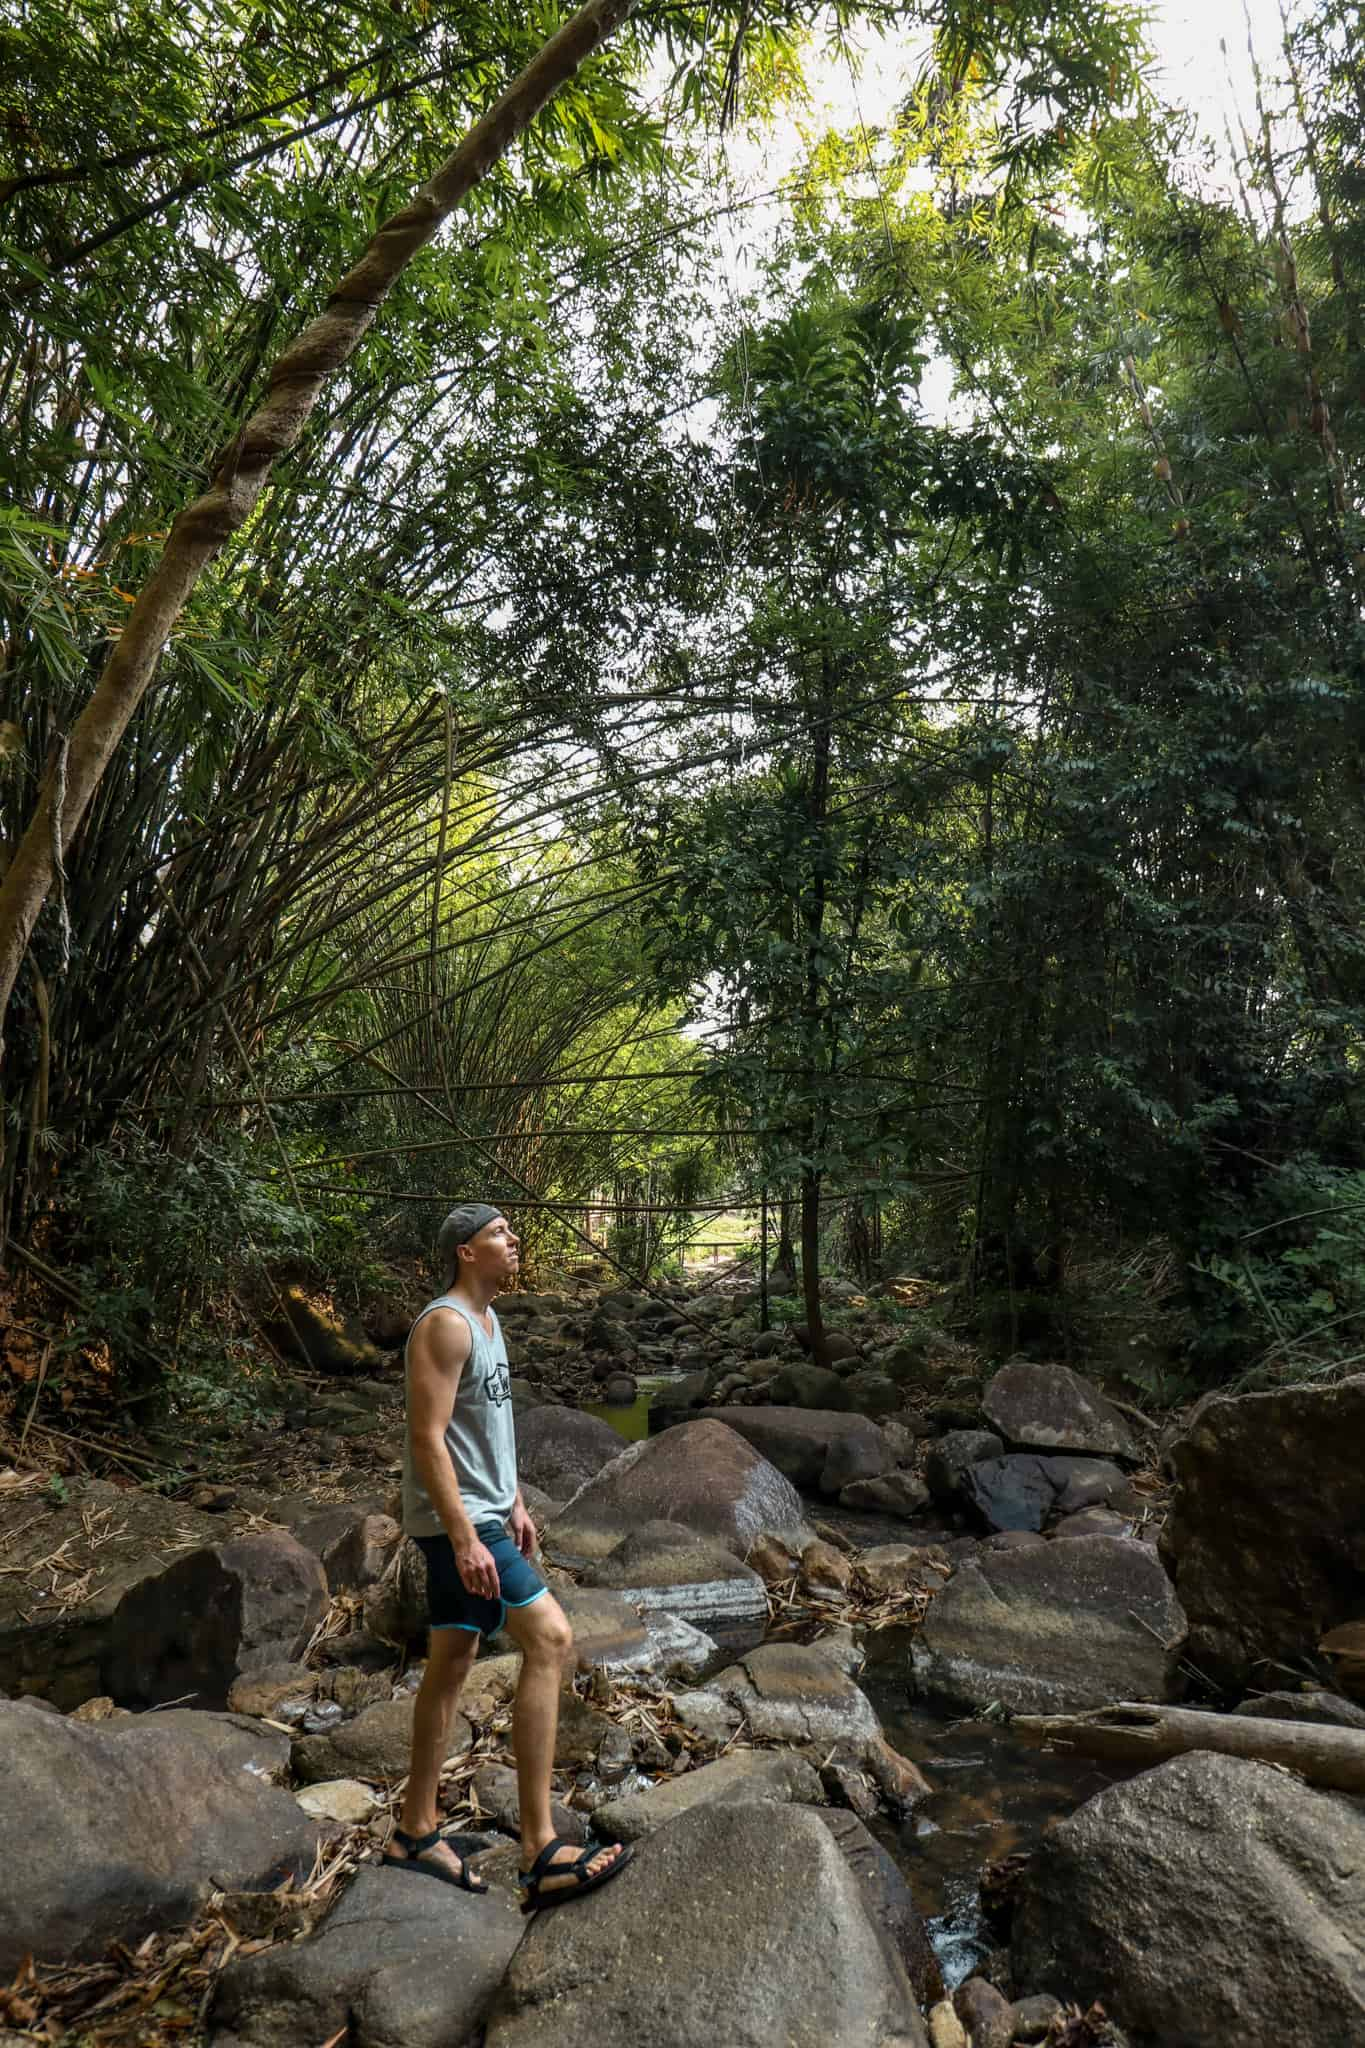 Nate on a river during hike in Phuket, Thailand